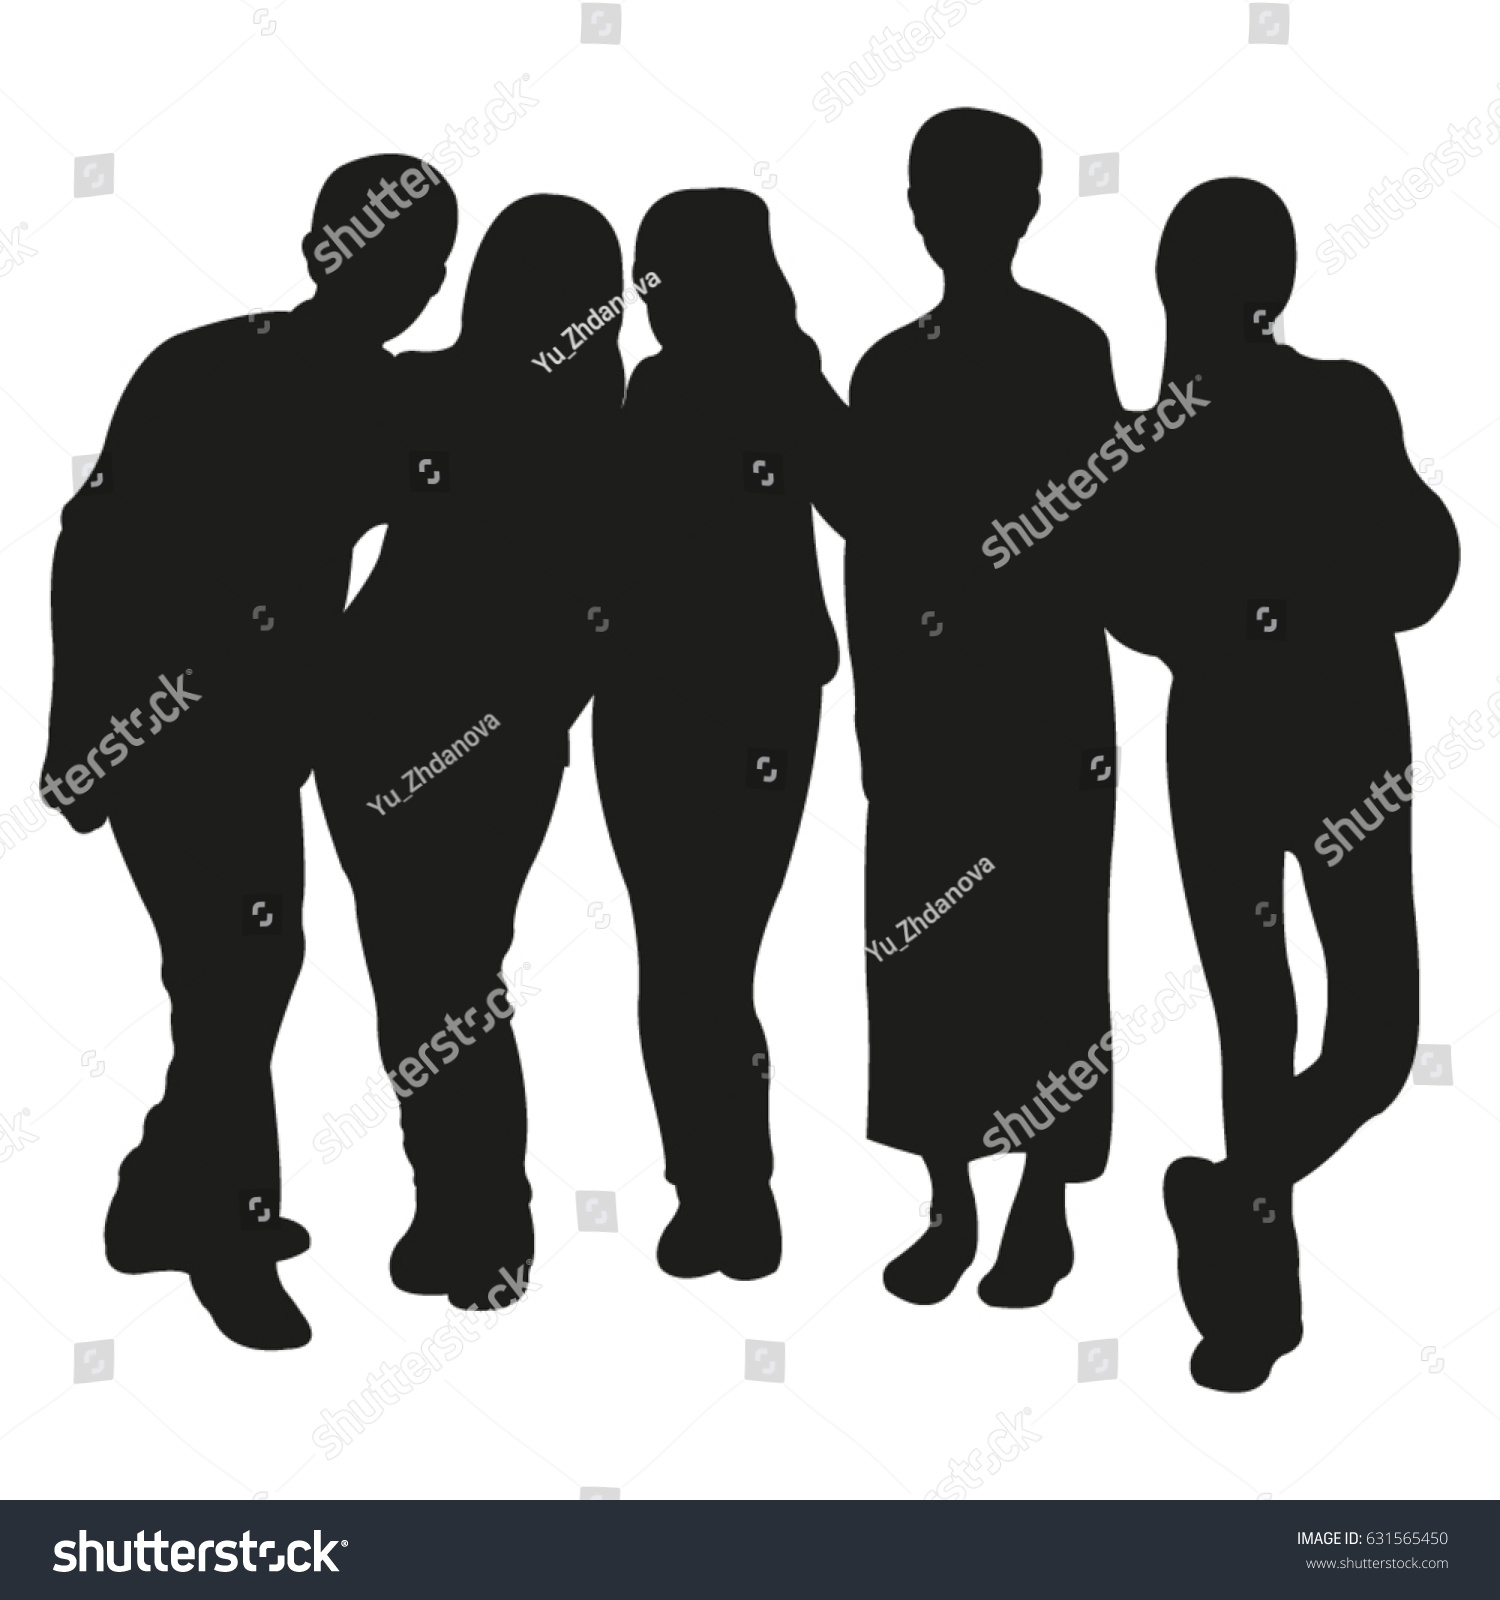 Vector Silhouette Group People Stock Vector 631565450 ...